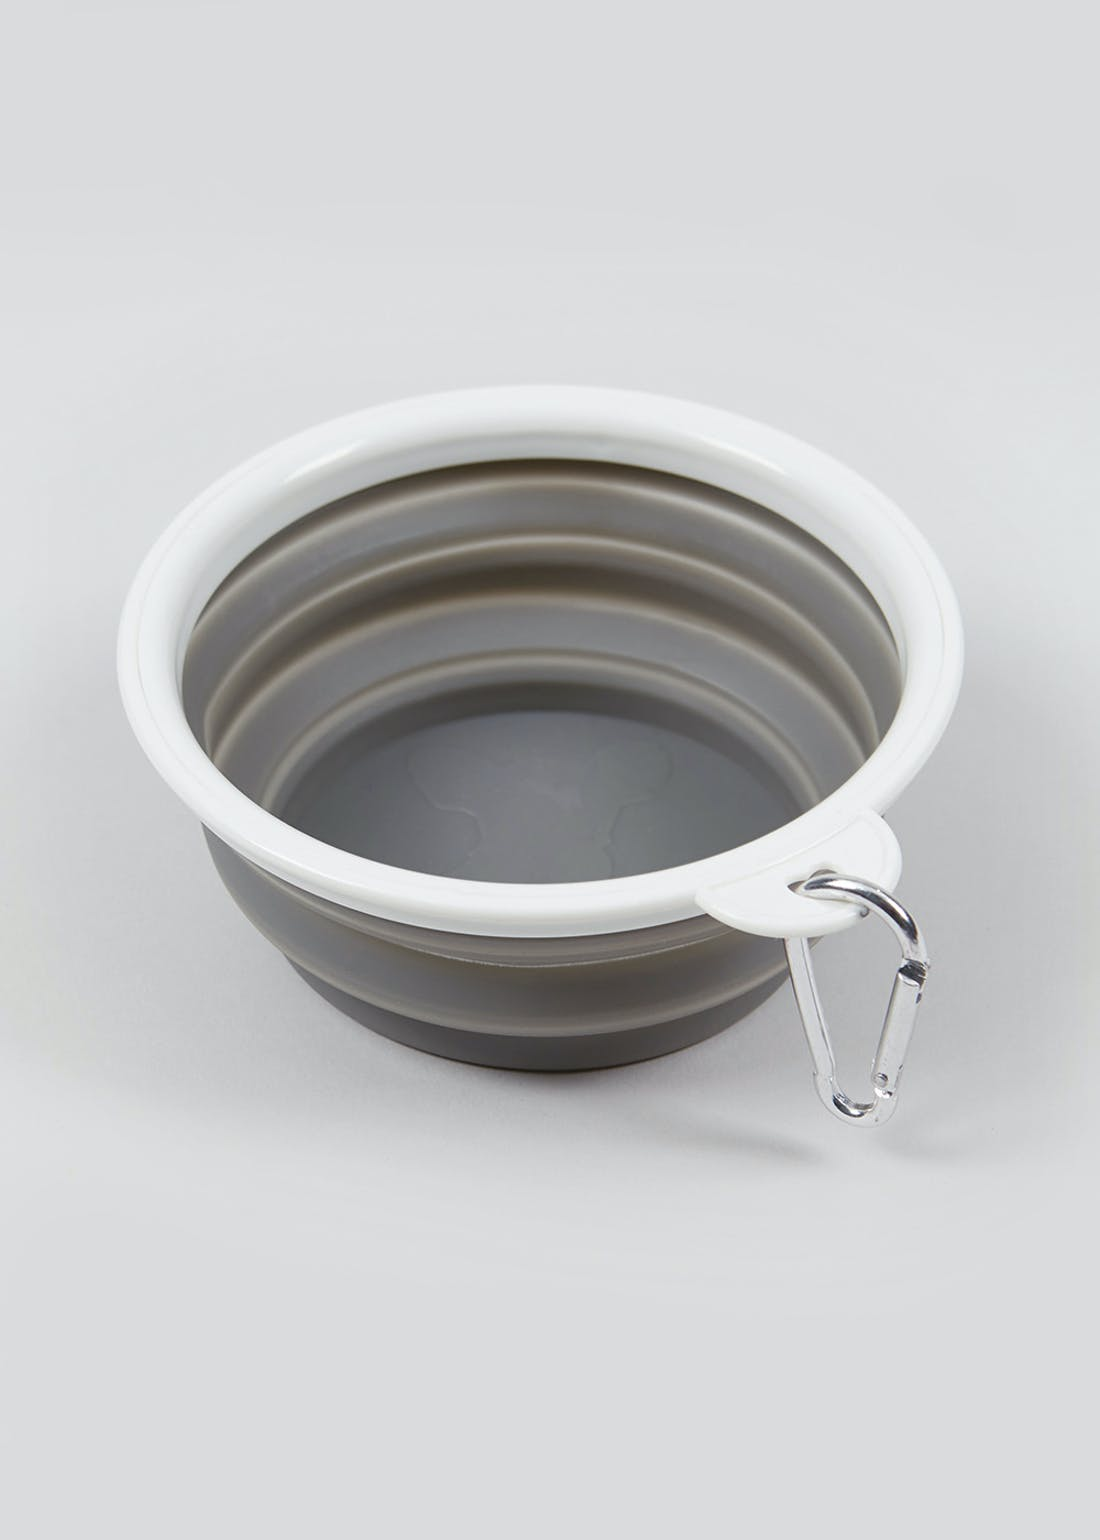 Collapsible Pet Bowl (13cm)